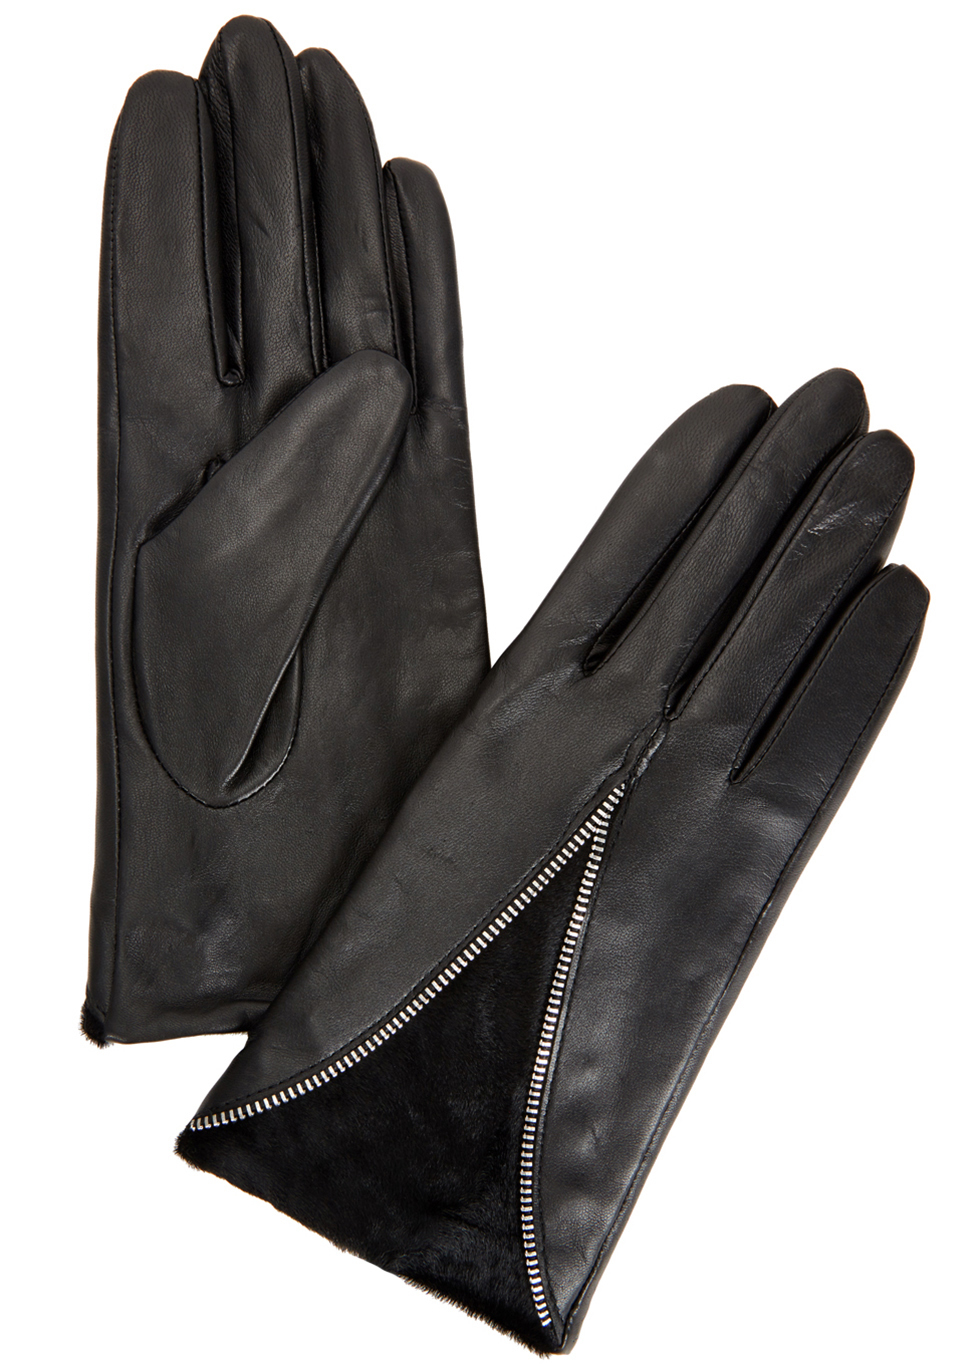 Layla Black Leather And Calf Hair Gloves - predominant colour: black; occasions: casual, creative work; type of pattern: standard; style: standard; length: wrist; material: leather; pattern: plain; season: a/w 2016